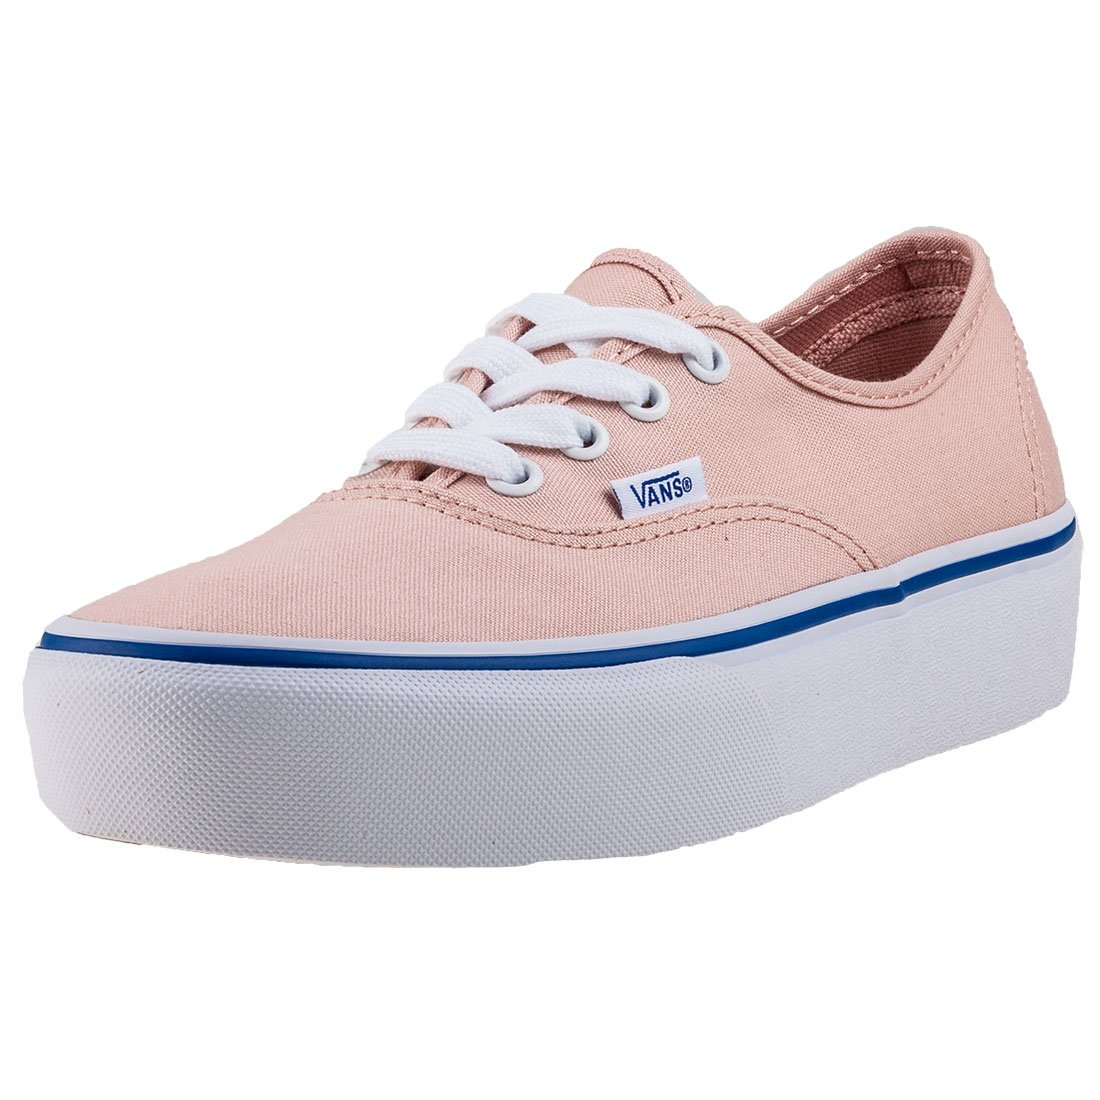 Vans Authentic Platform 2.0 Sneaker Damen  4.5 US - 36.0 EU